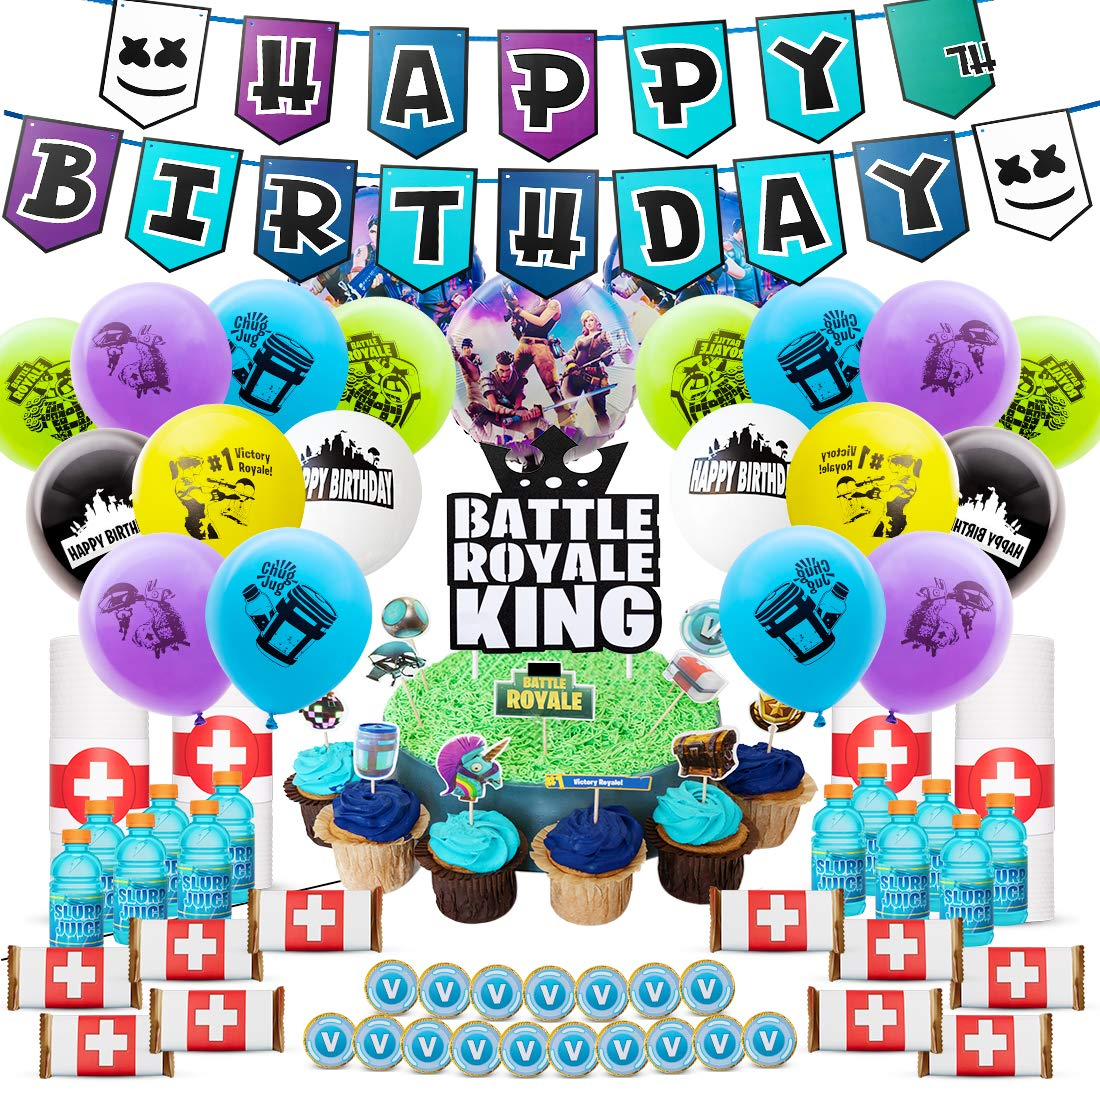 DMight Birthday Party Supplies for Game Fans, 123 Pcs Party Favors - Cake Topper, Bottle Label, Chocolate Sticker, Latex Balloon, Foil Balloon, Roll Paper Sticker, Banner by DMIGHT